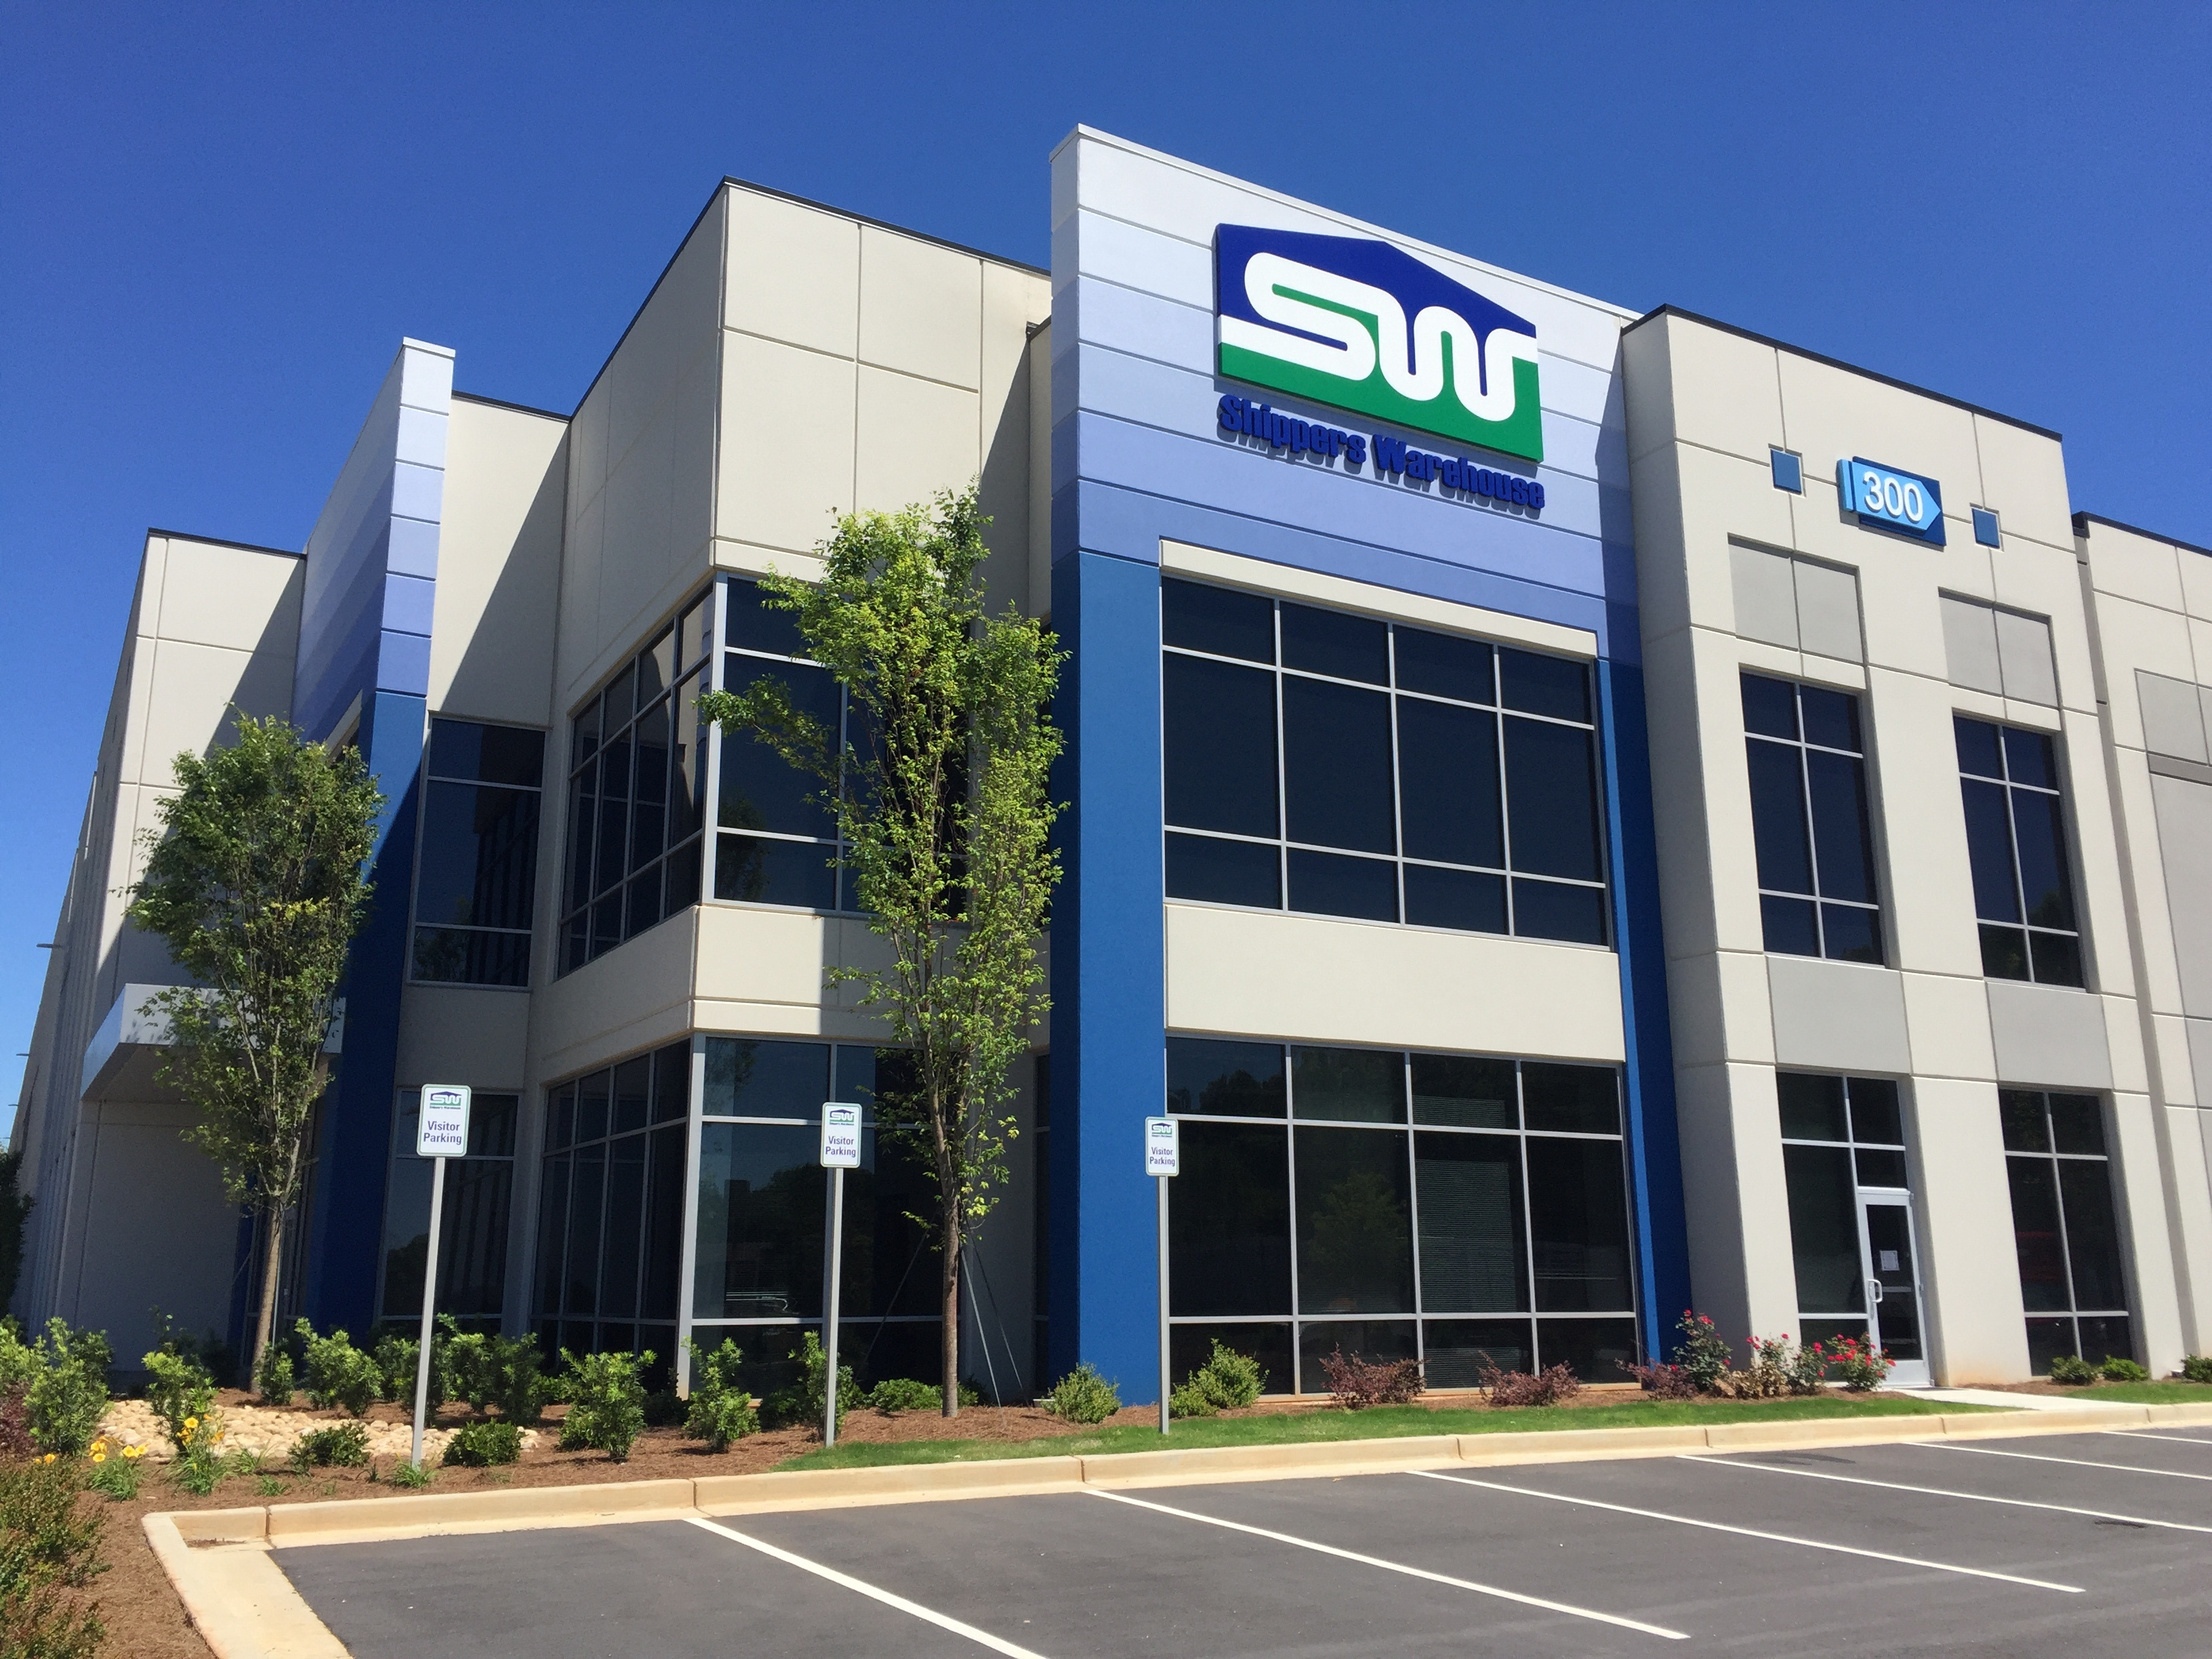 The Shippers Group facility in Austell Georgia